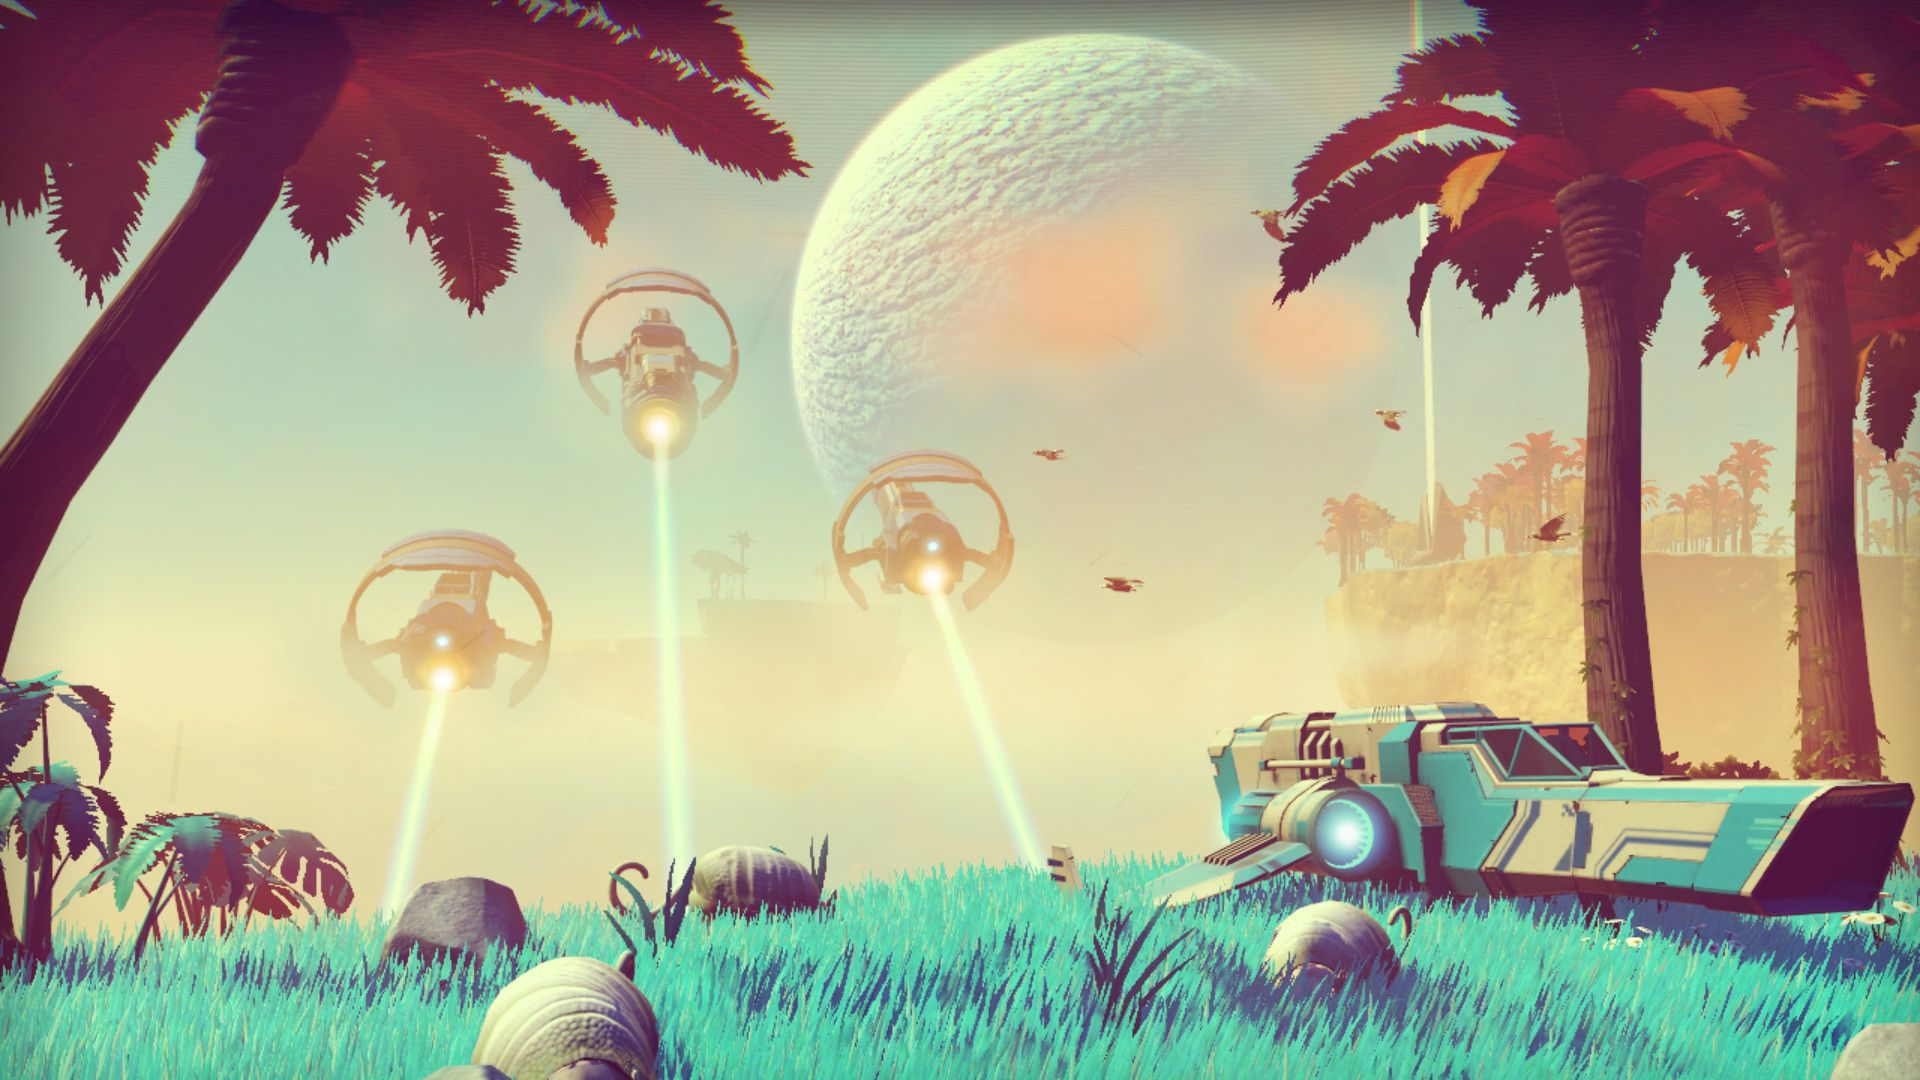 How No Mans Sky Nearly Lost Its Name Through Legal Nonsense no mans sky screenshot 02 1920.0